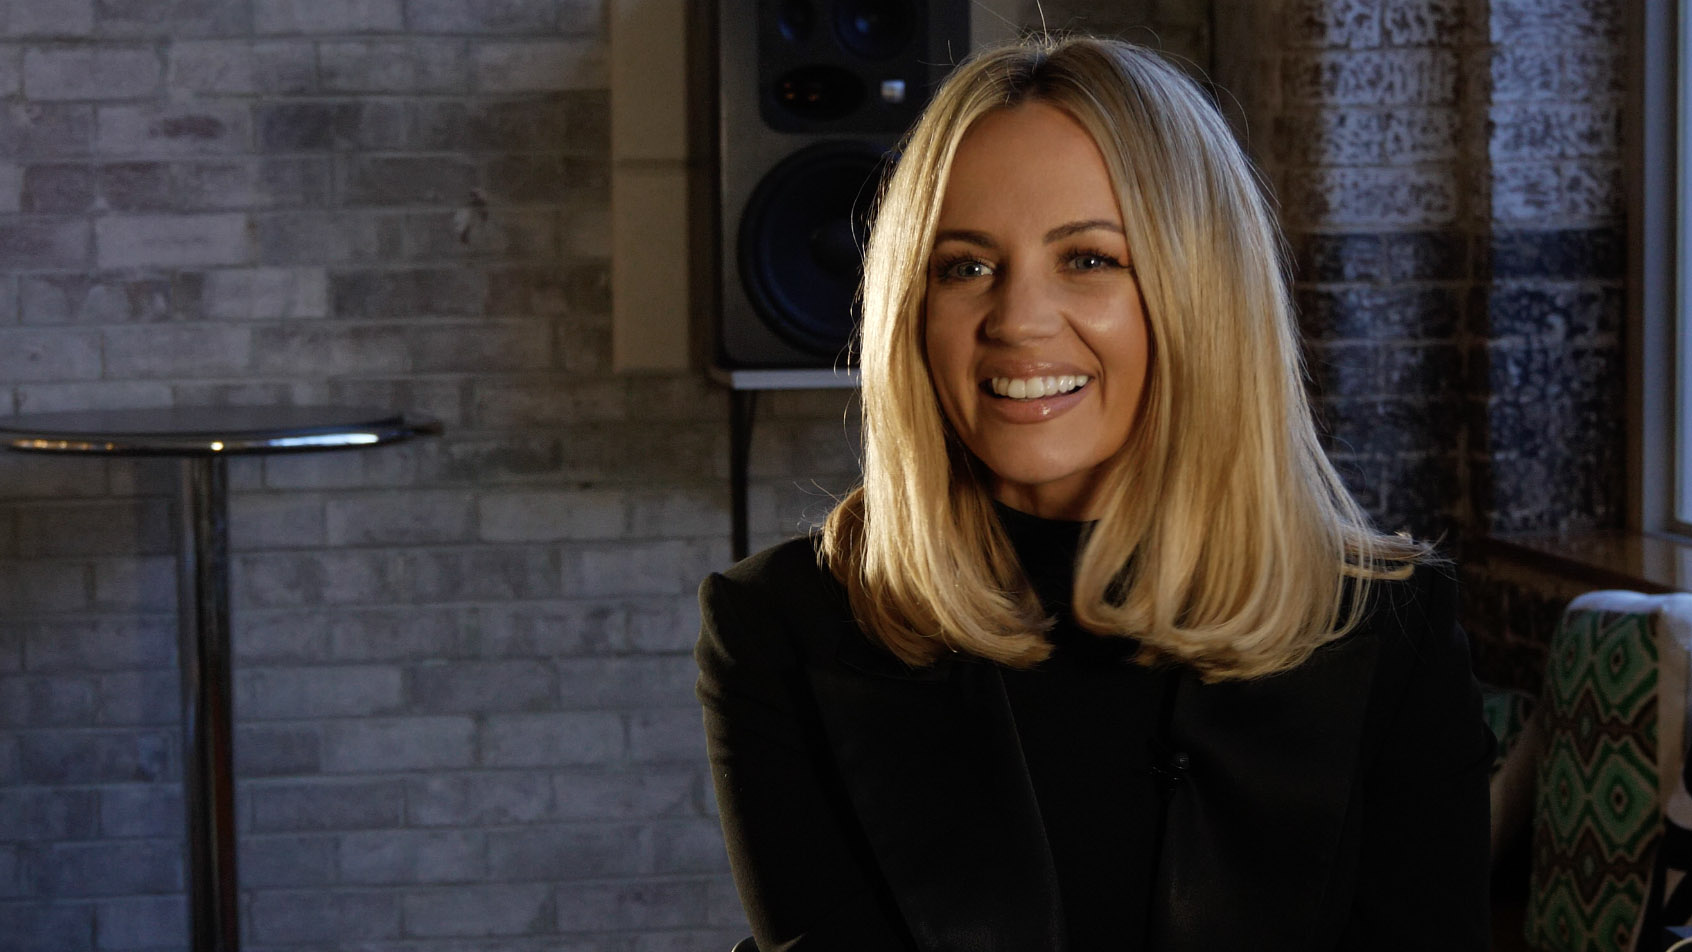 Samantha Jade opens up about anxiety on new album